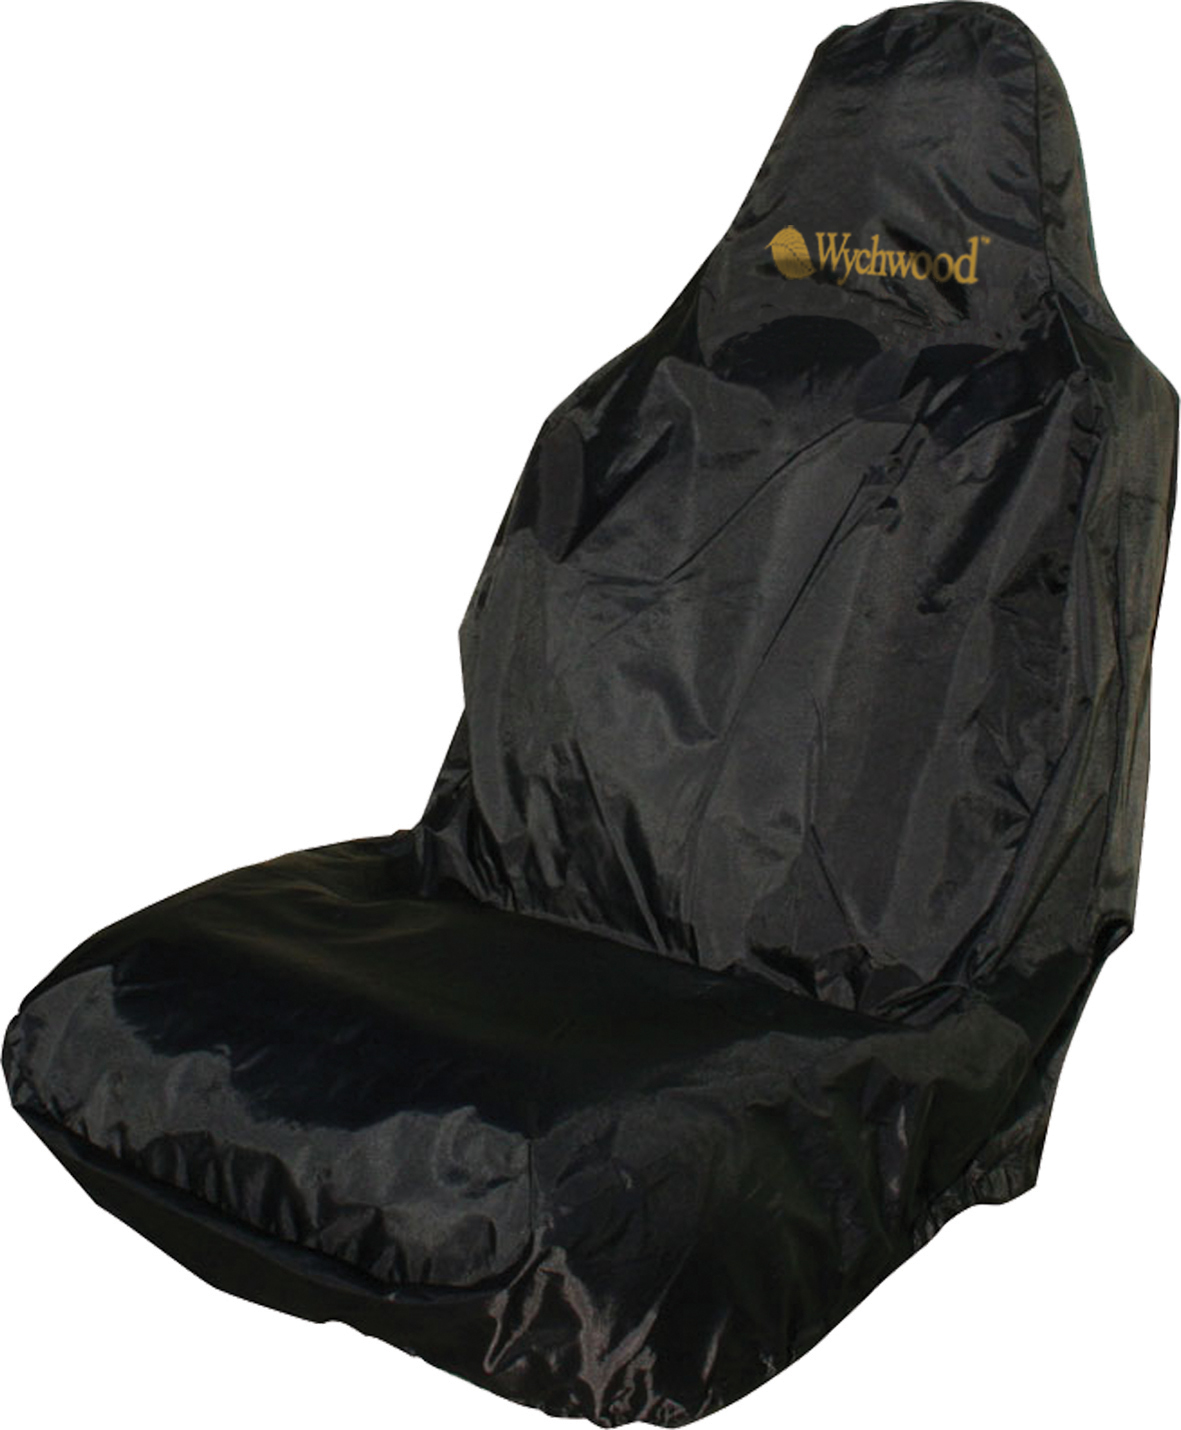 Wychwood Car Seat Protector Glasgow Angling Centre